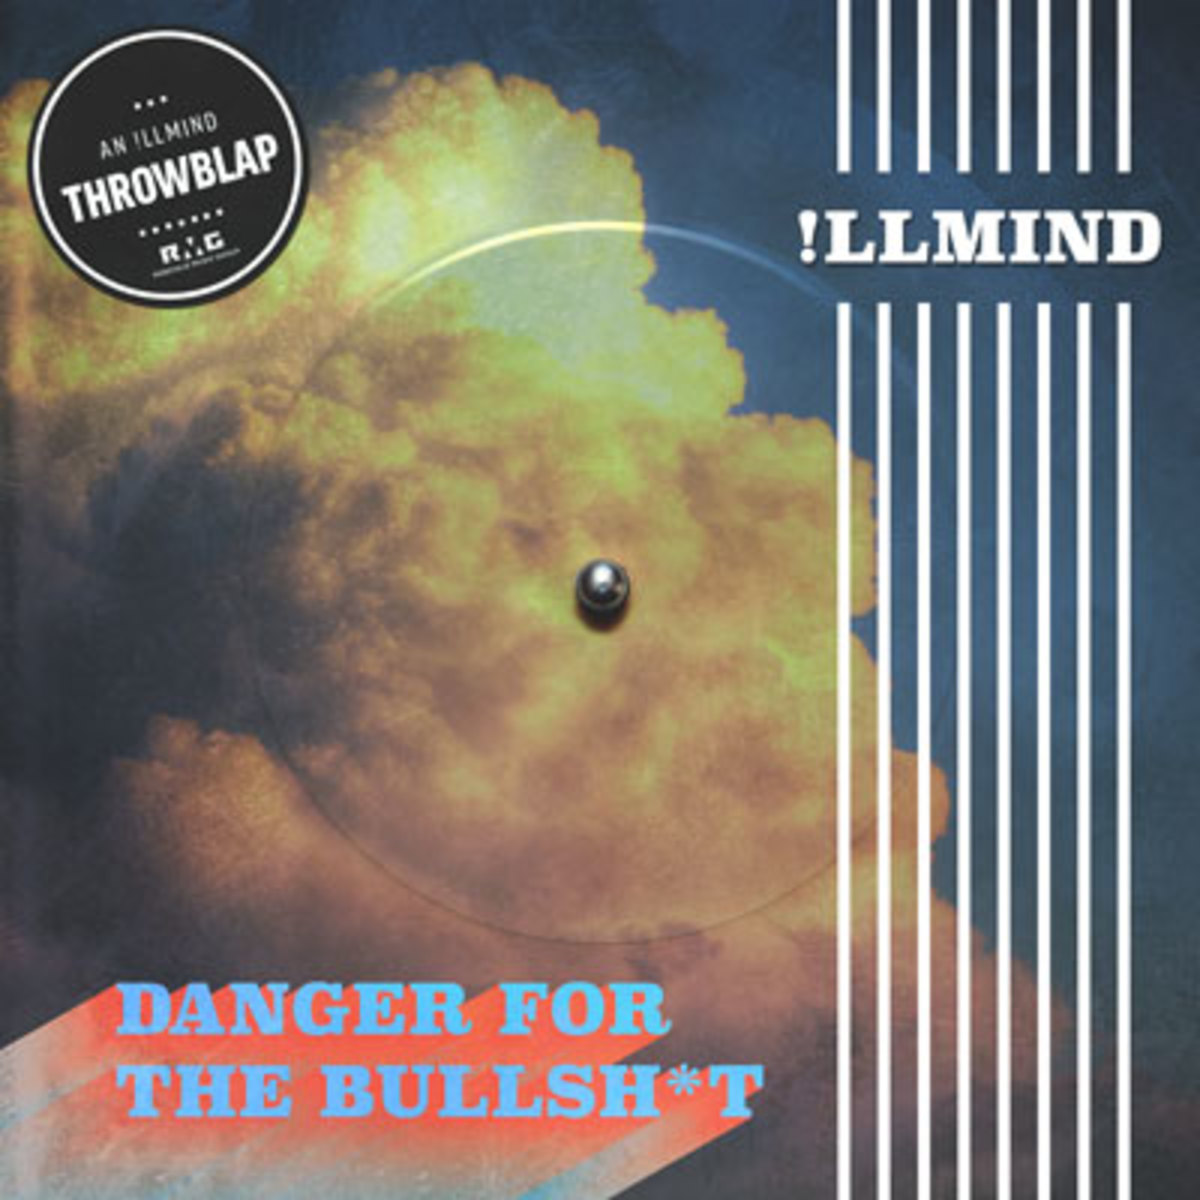 illmind-dangerforthe.jpg